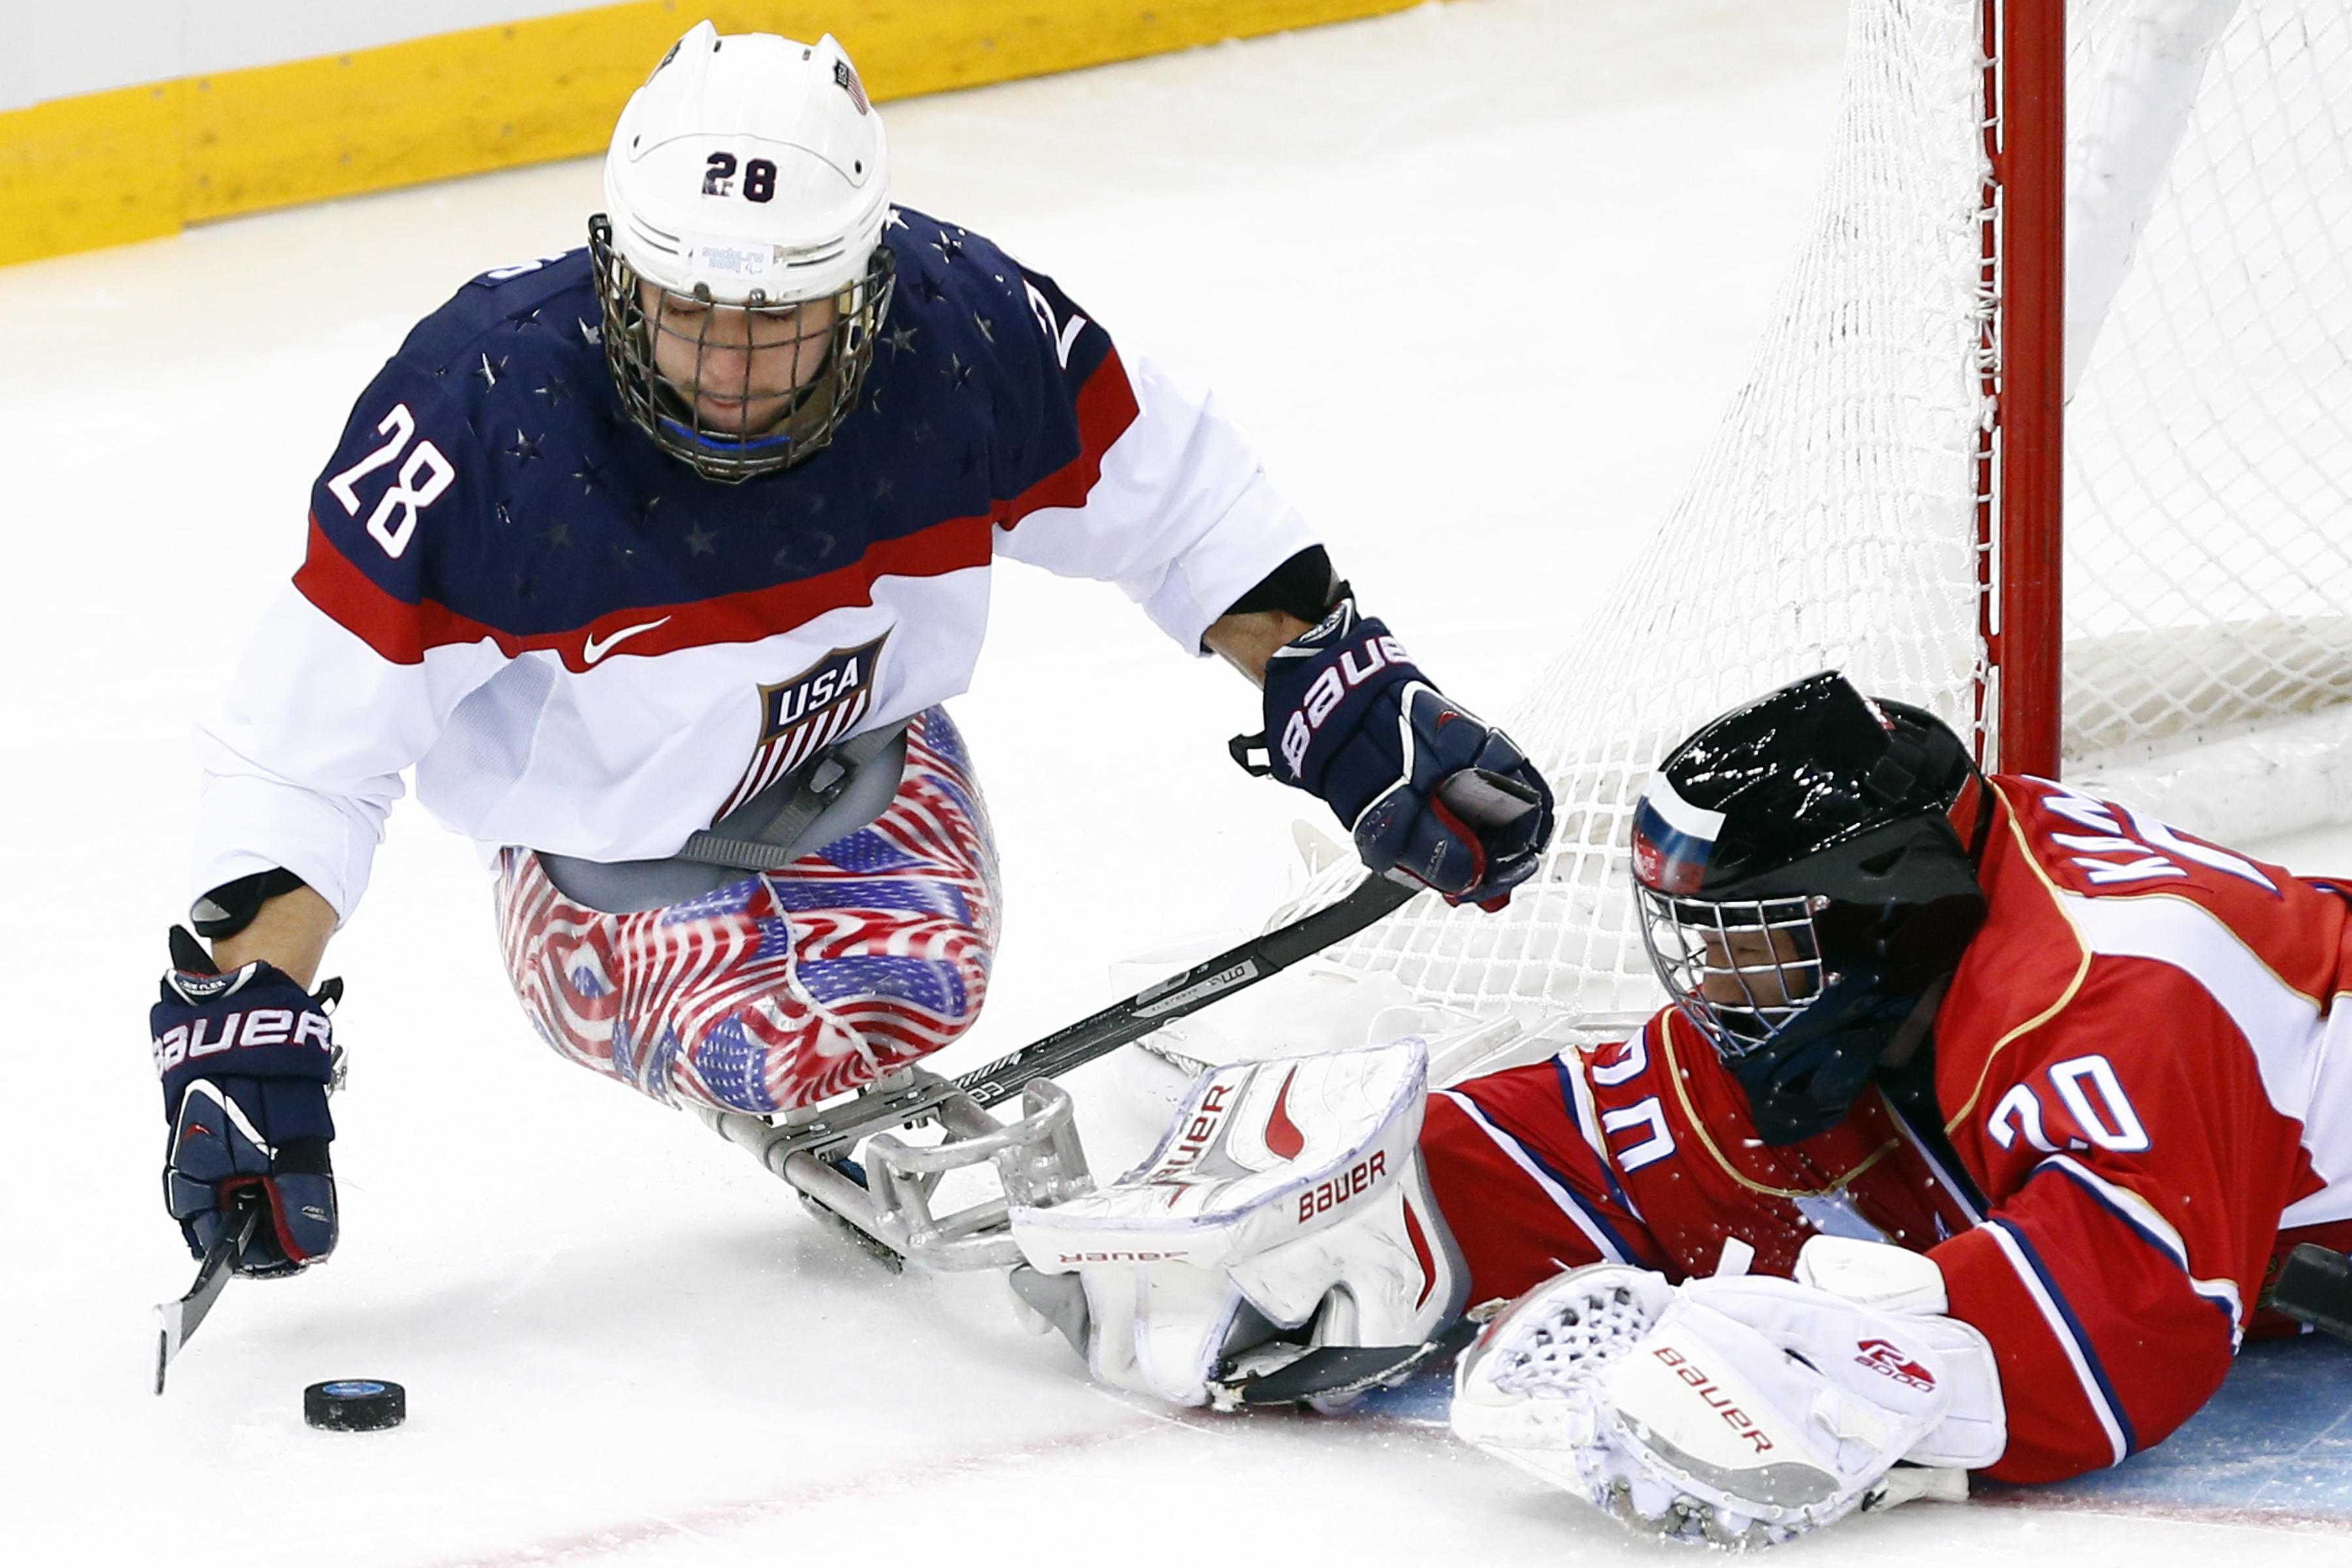 United States's Paul Schaus, left in action with Russia's Vladimir Kamantcev, right during the gold medal ice sledge hockey match between United States and Russia at the 2014 Winter Paralympics in Sochi, Russia, Saturday, March 15, 2014. (AP Photo/Pavel Golovkin)